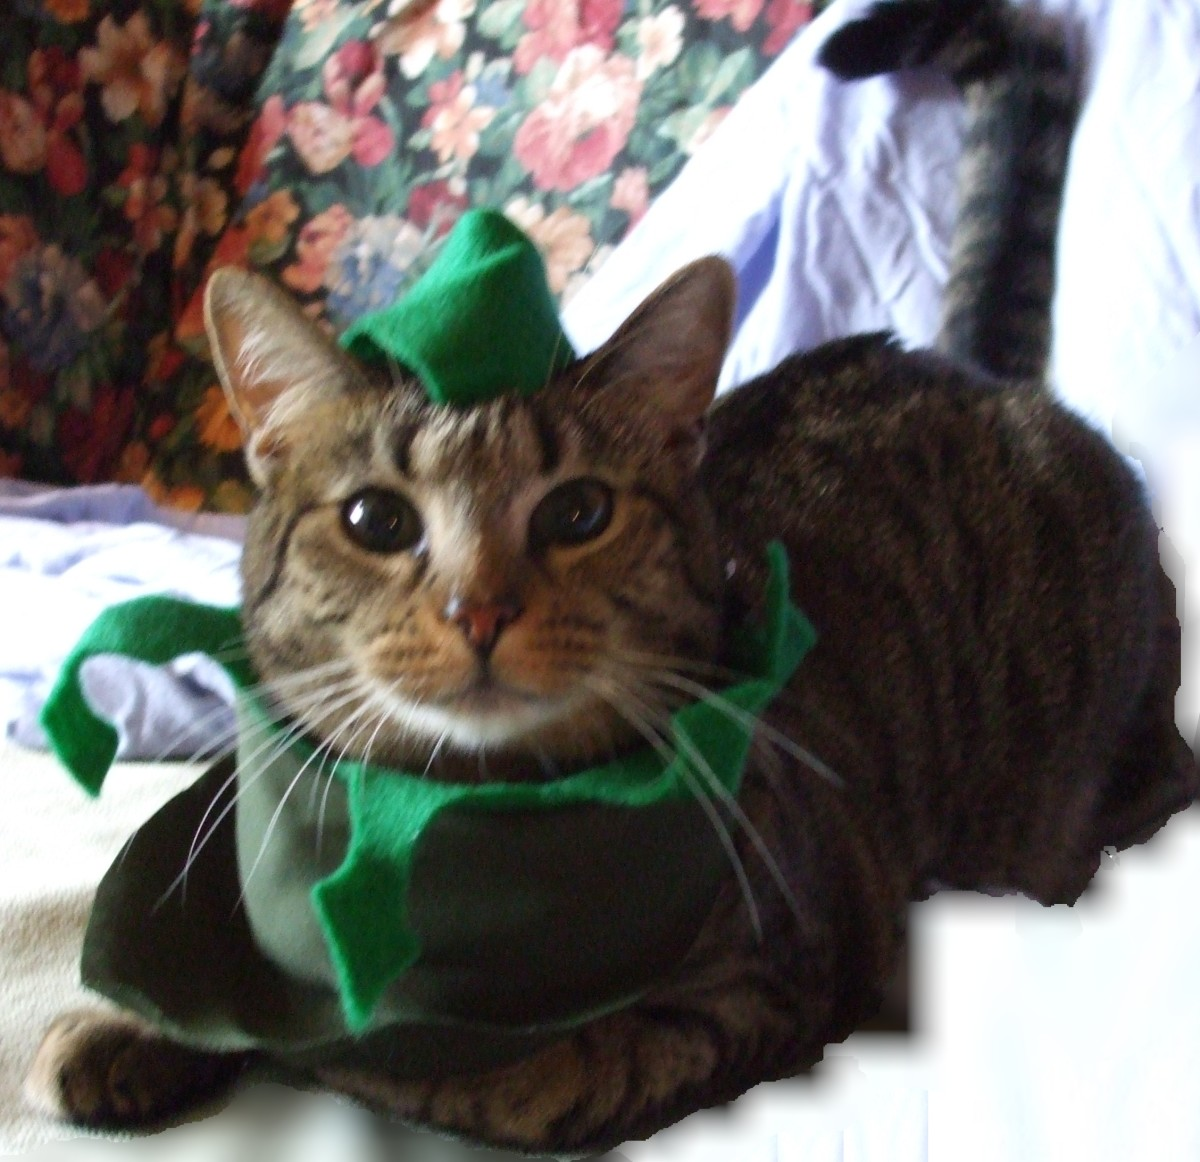 How to Make a Cat's Costume for Halloween: Patterns and Instructions